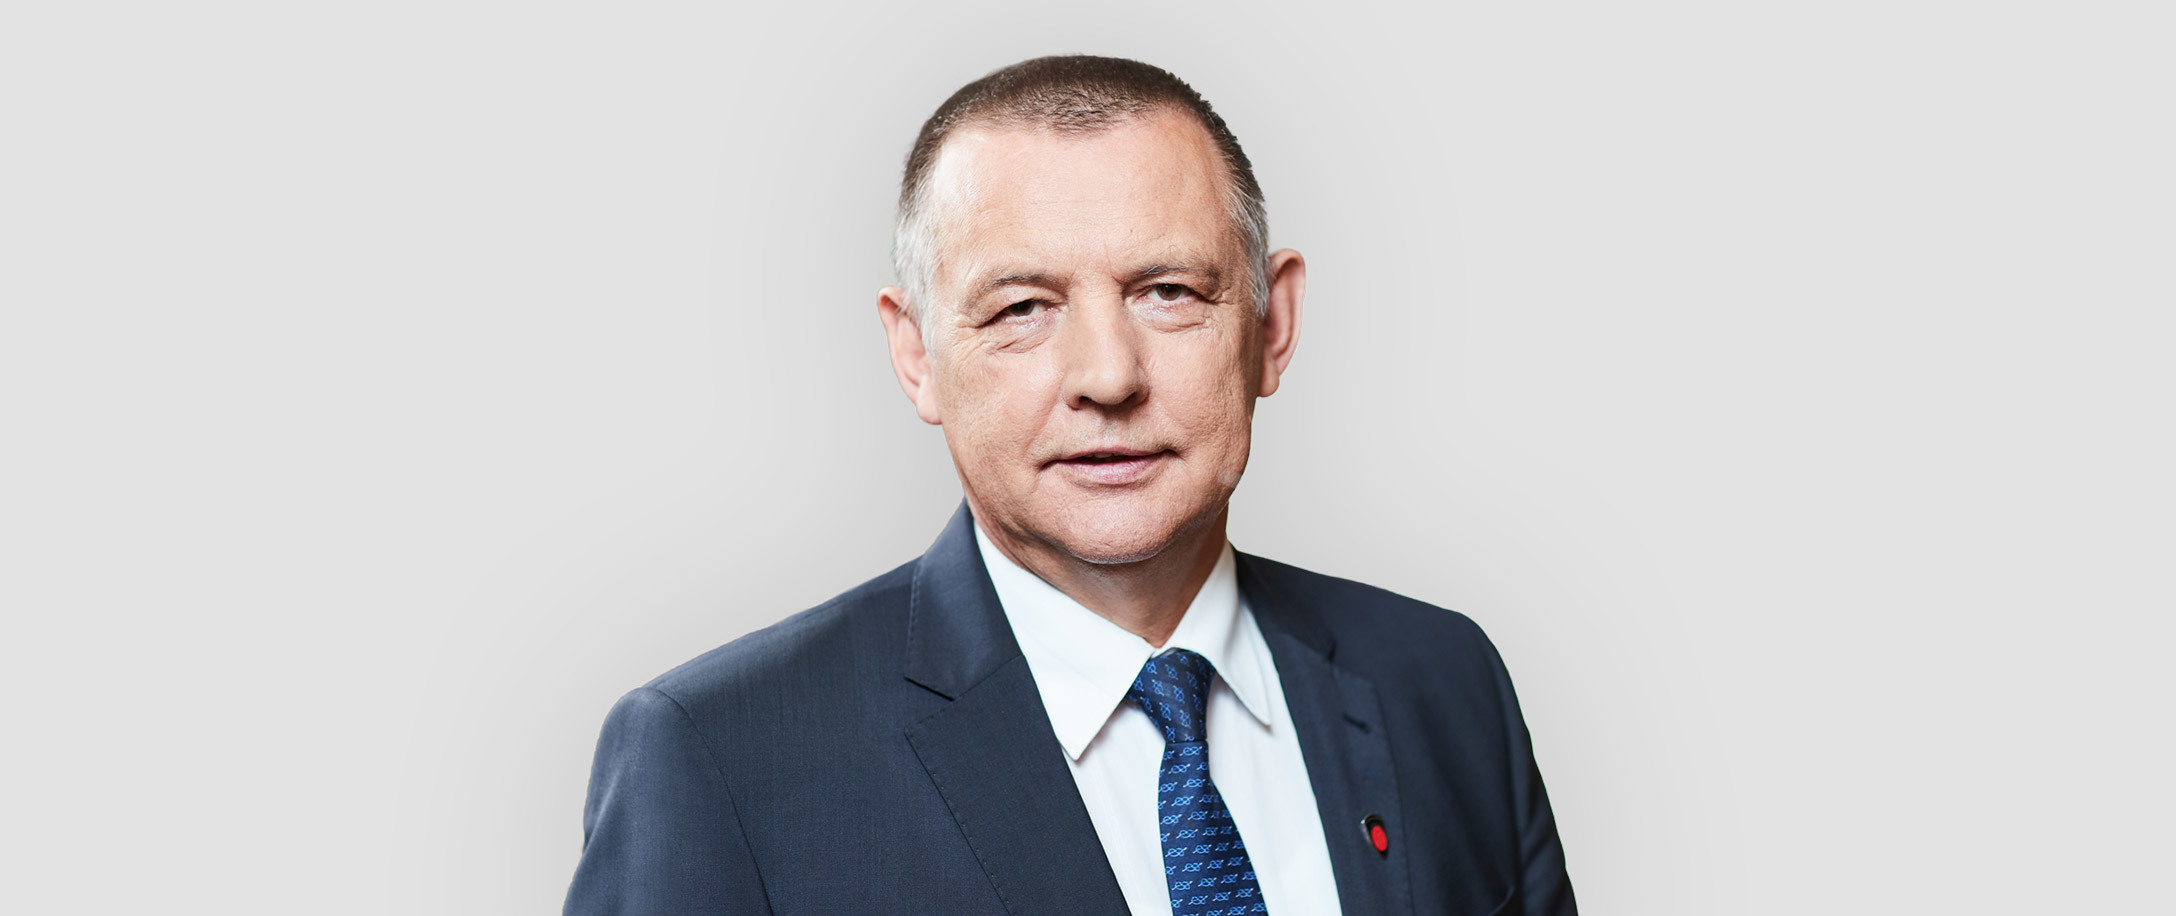 Marian Banaś - Minister of Finance